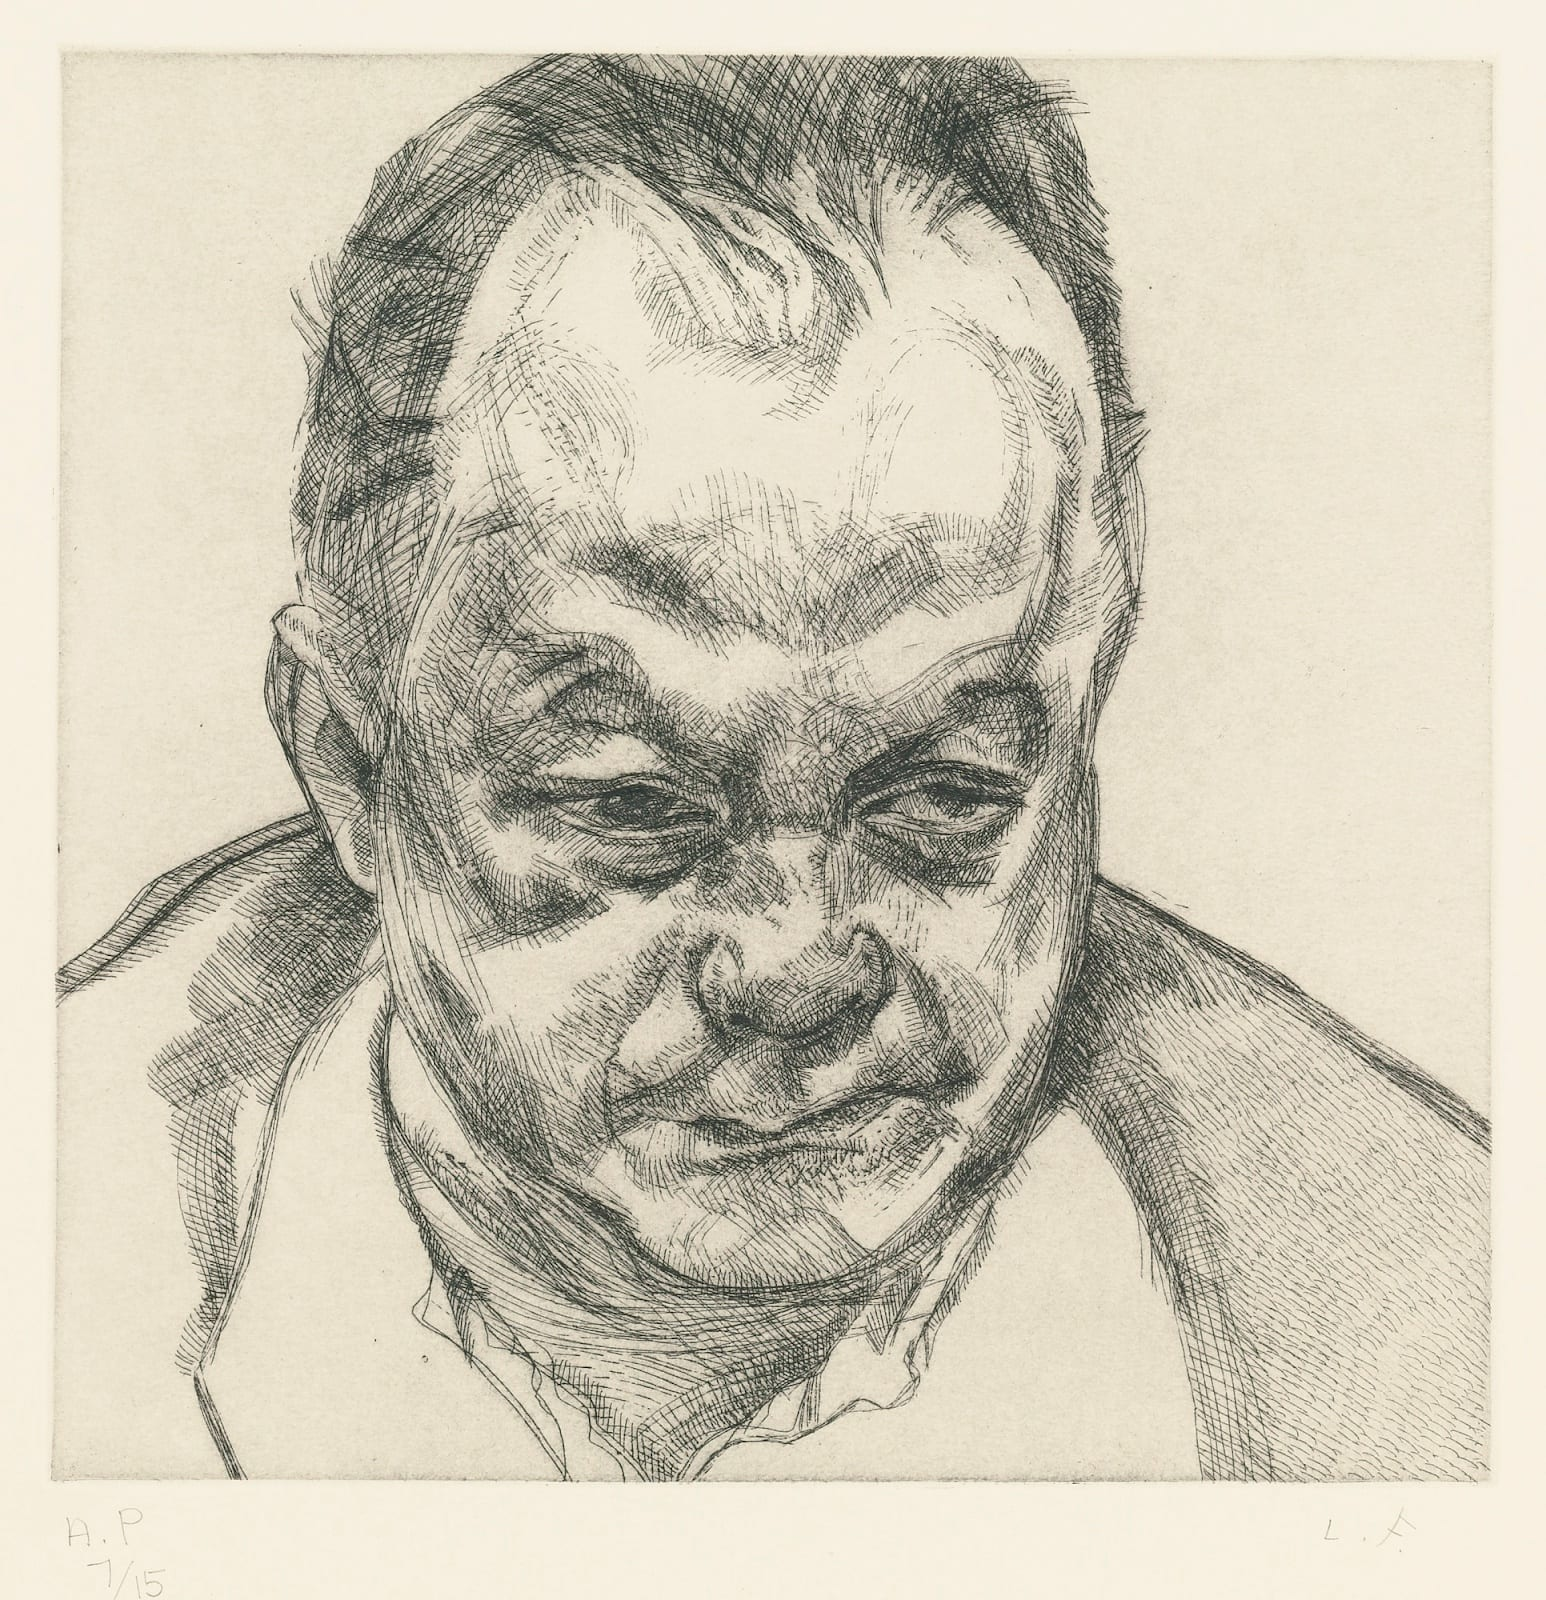 Lucian Freud (1922-2011) Bruce Bernard 1985 Etching on Arches paper Private Collection © Lucian Freud estate To see and discover more about this artist click here